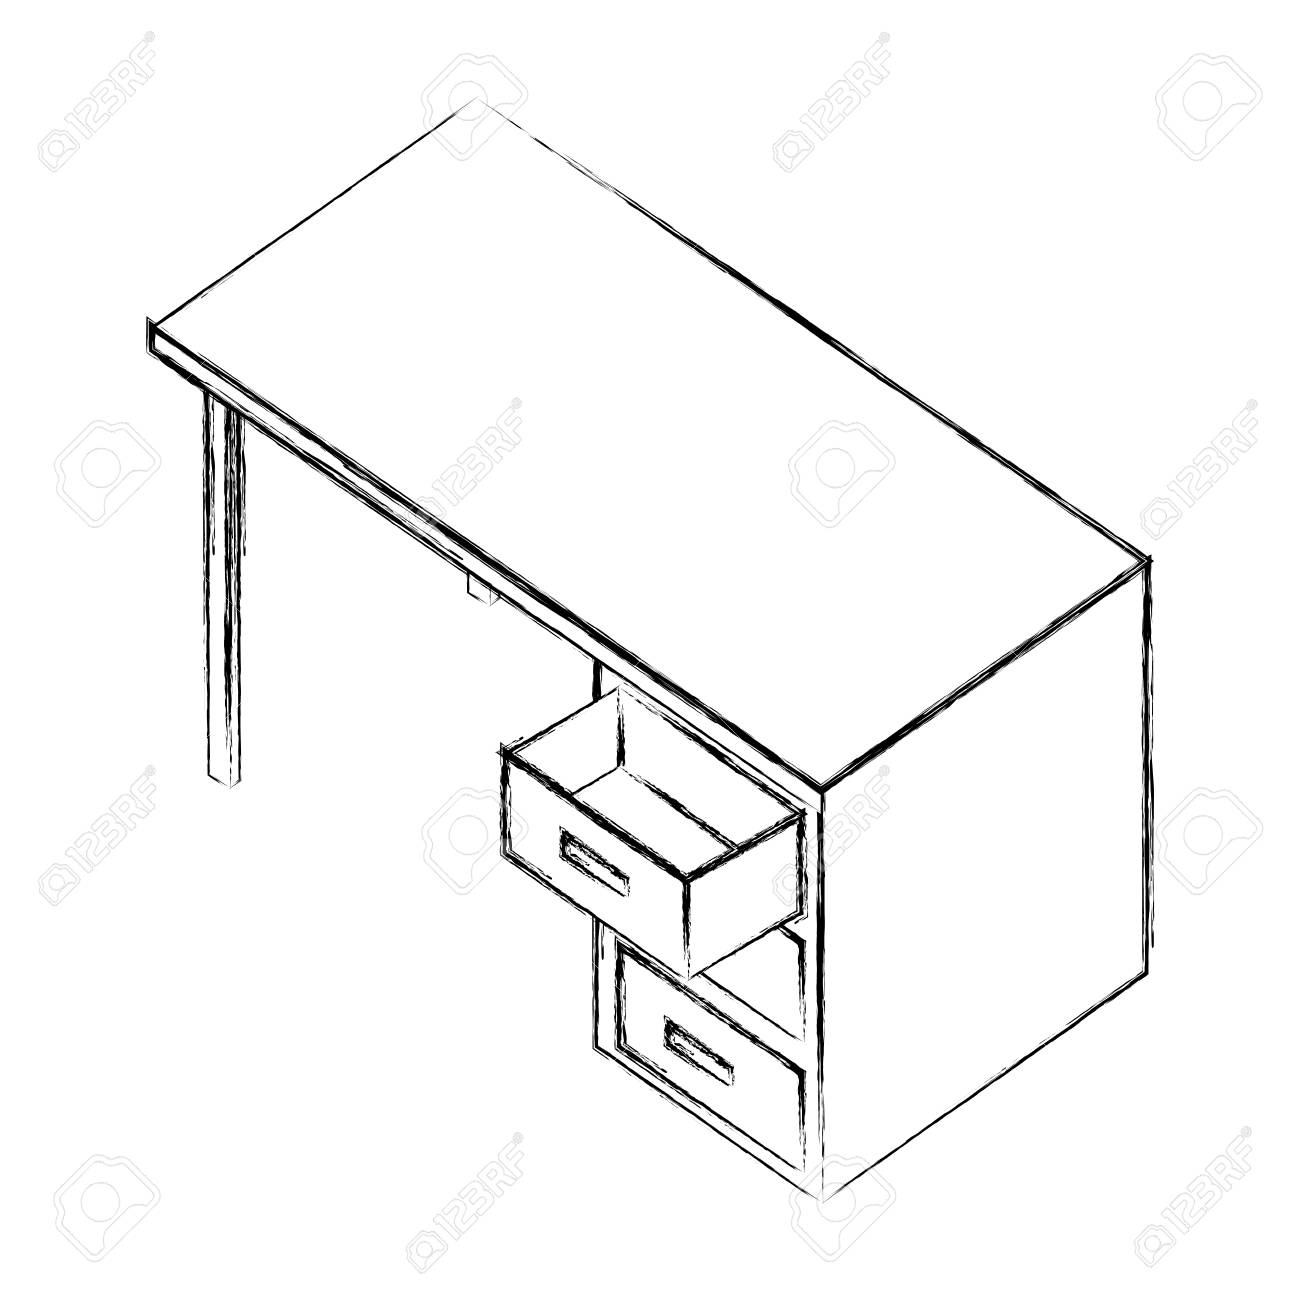 Office Desk Furniture Drawers Isometric Image Vector Illustration Royalty Free Cliparts Vectors And Stock Illustration Image 101511740